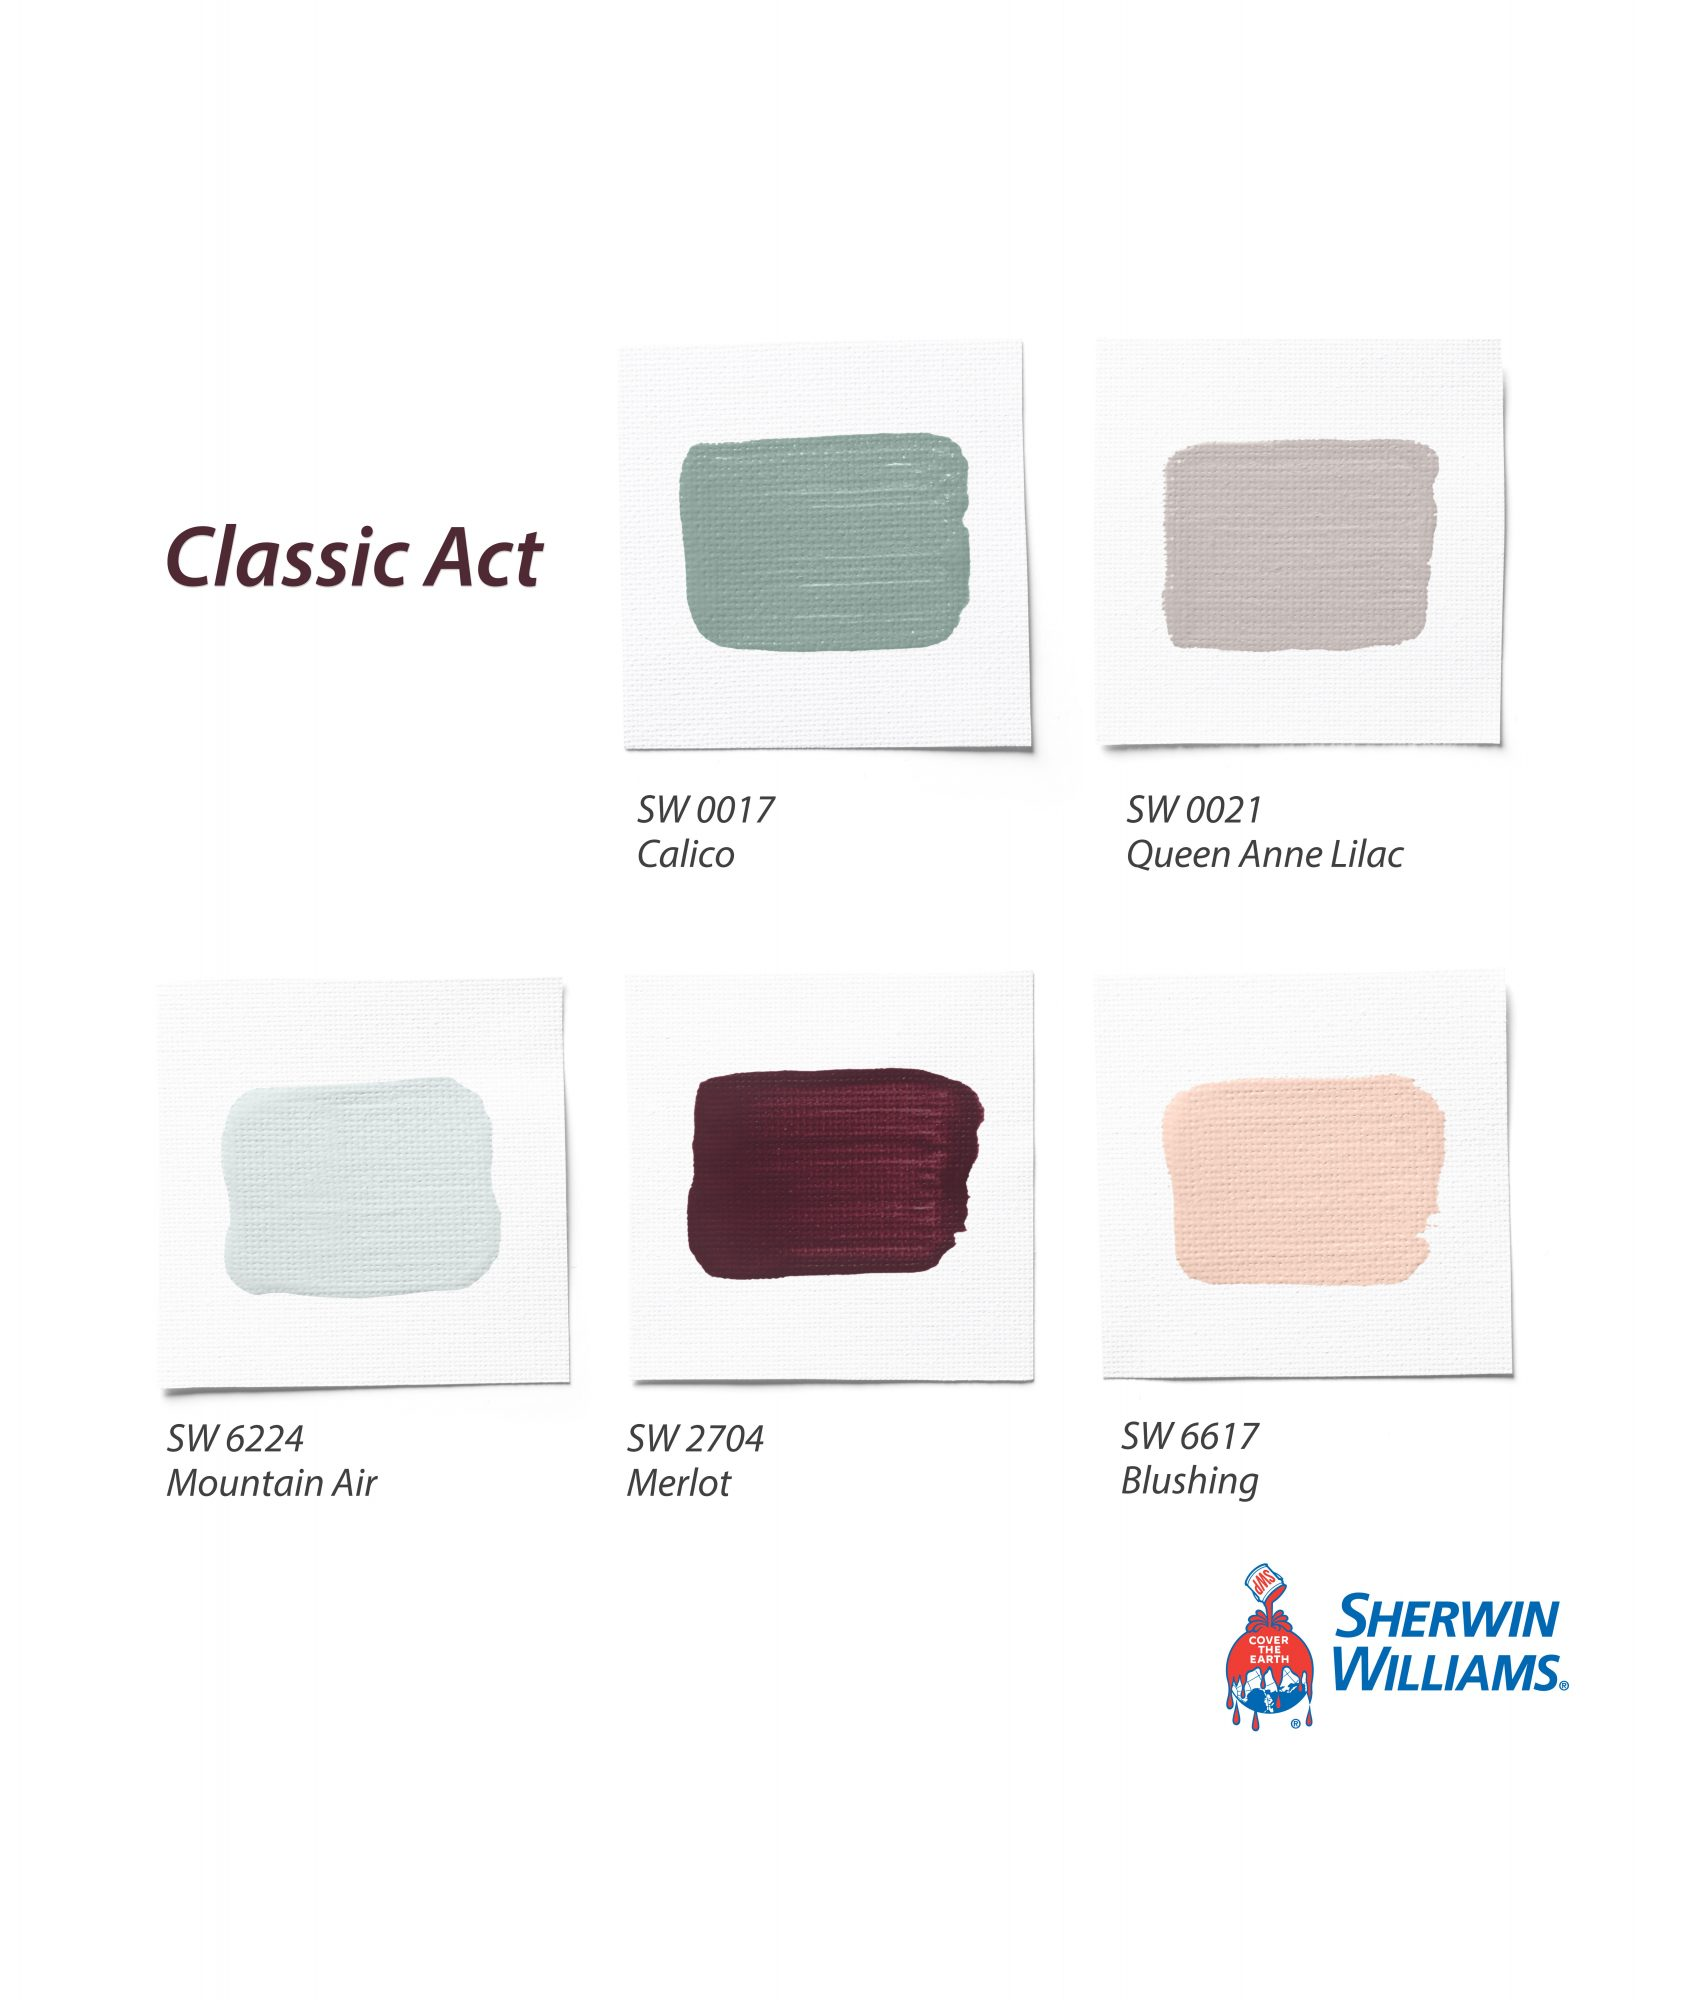 Classic Act Palette